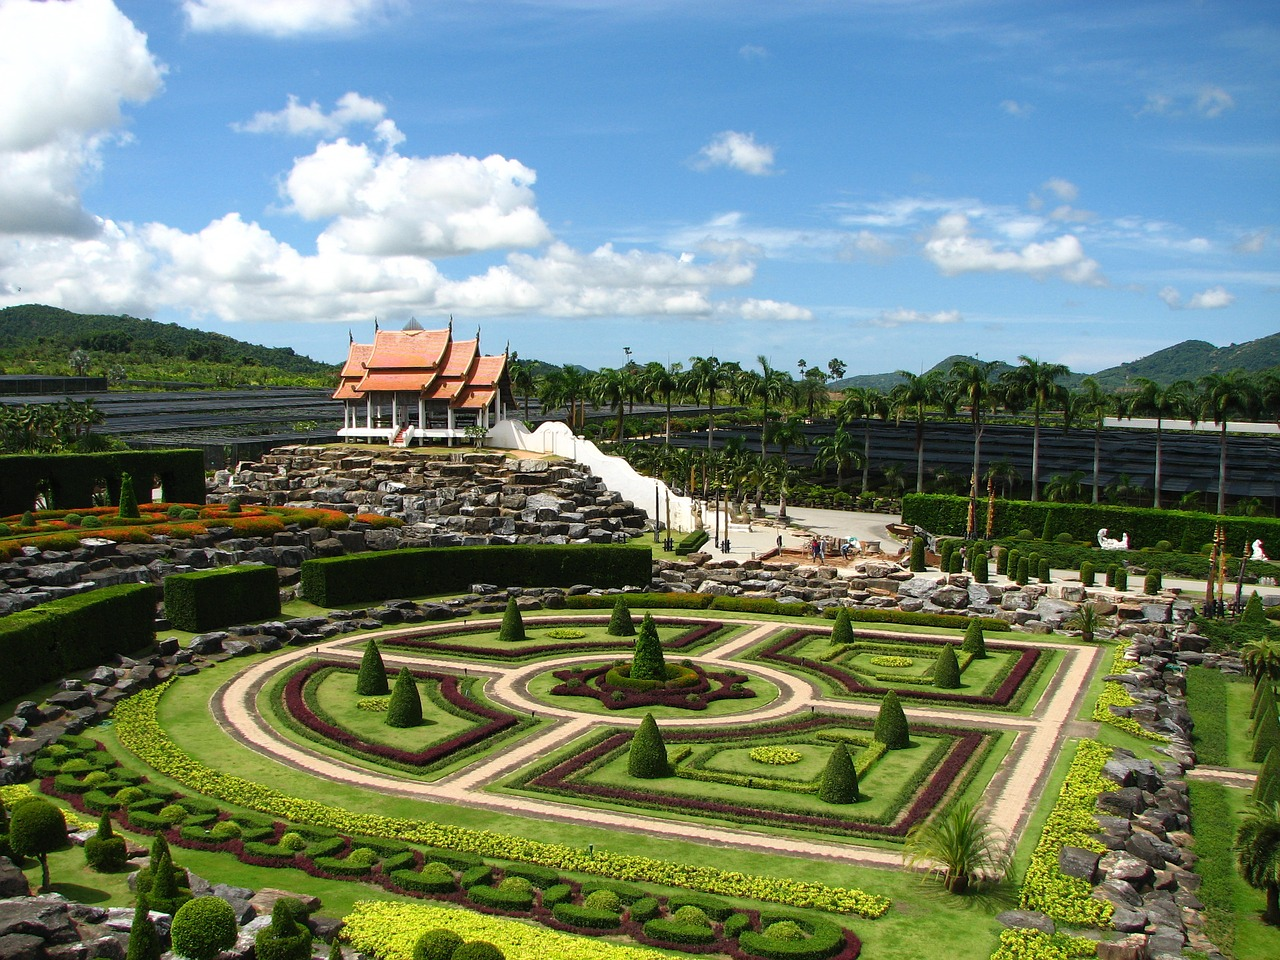 Amazing Place to Visit in Pattaya-Nong Nooch Tropical Botanical Garden